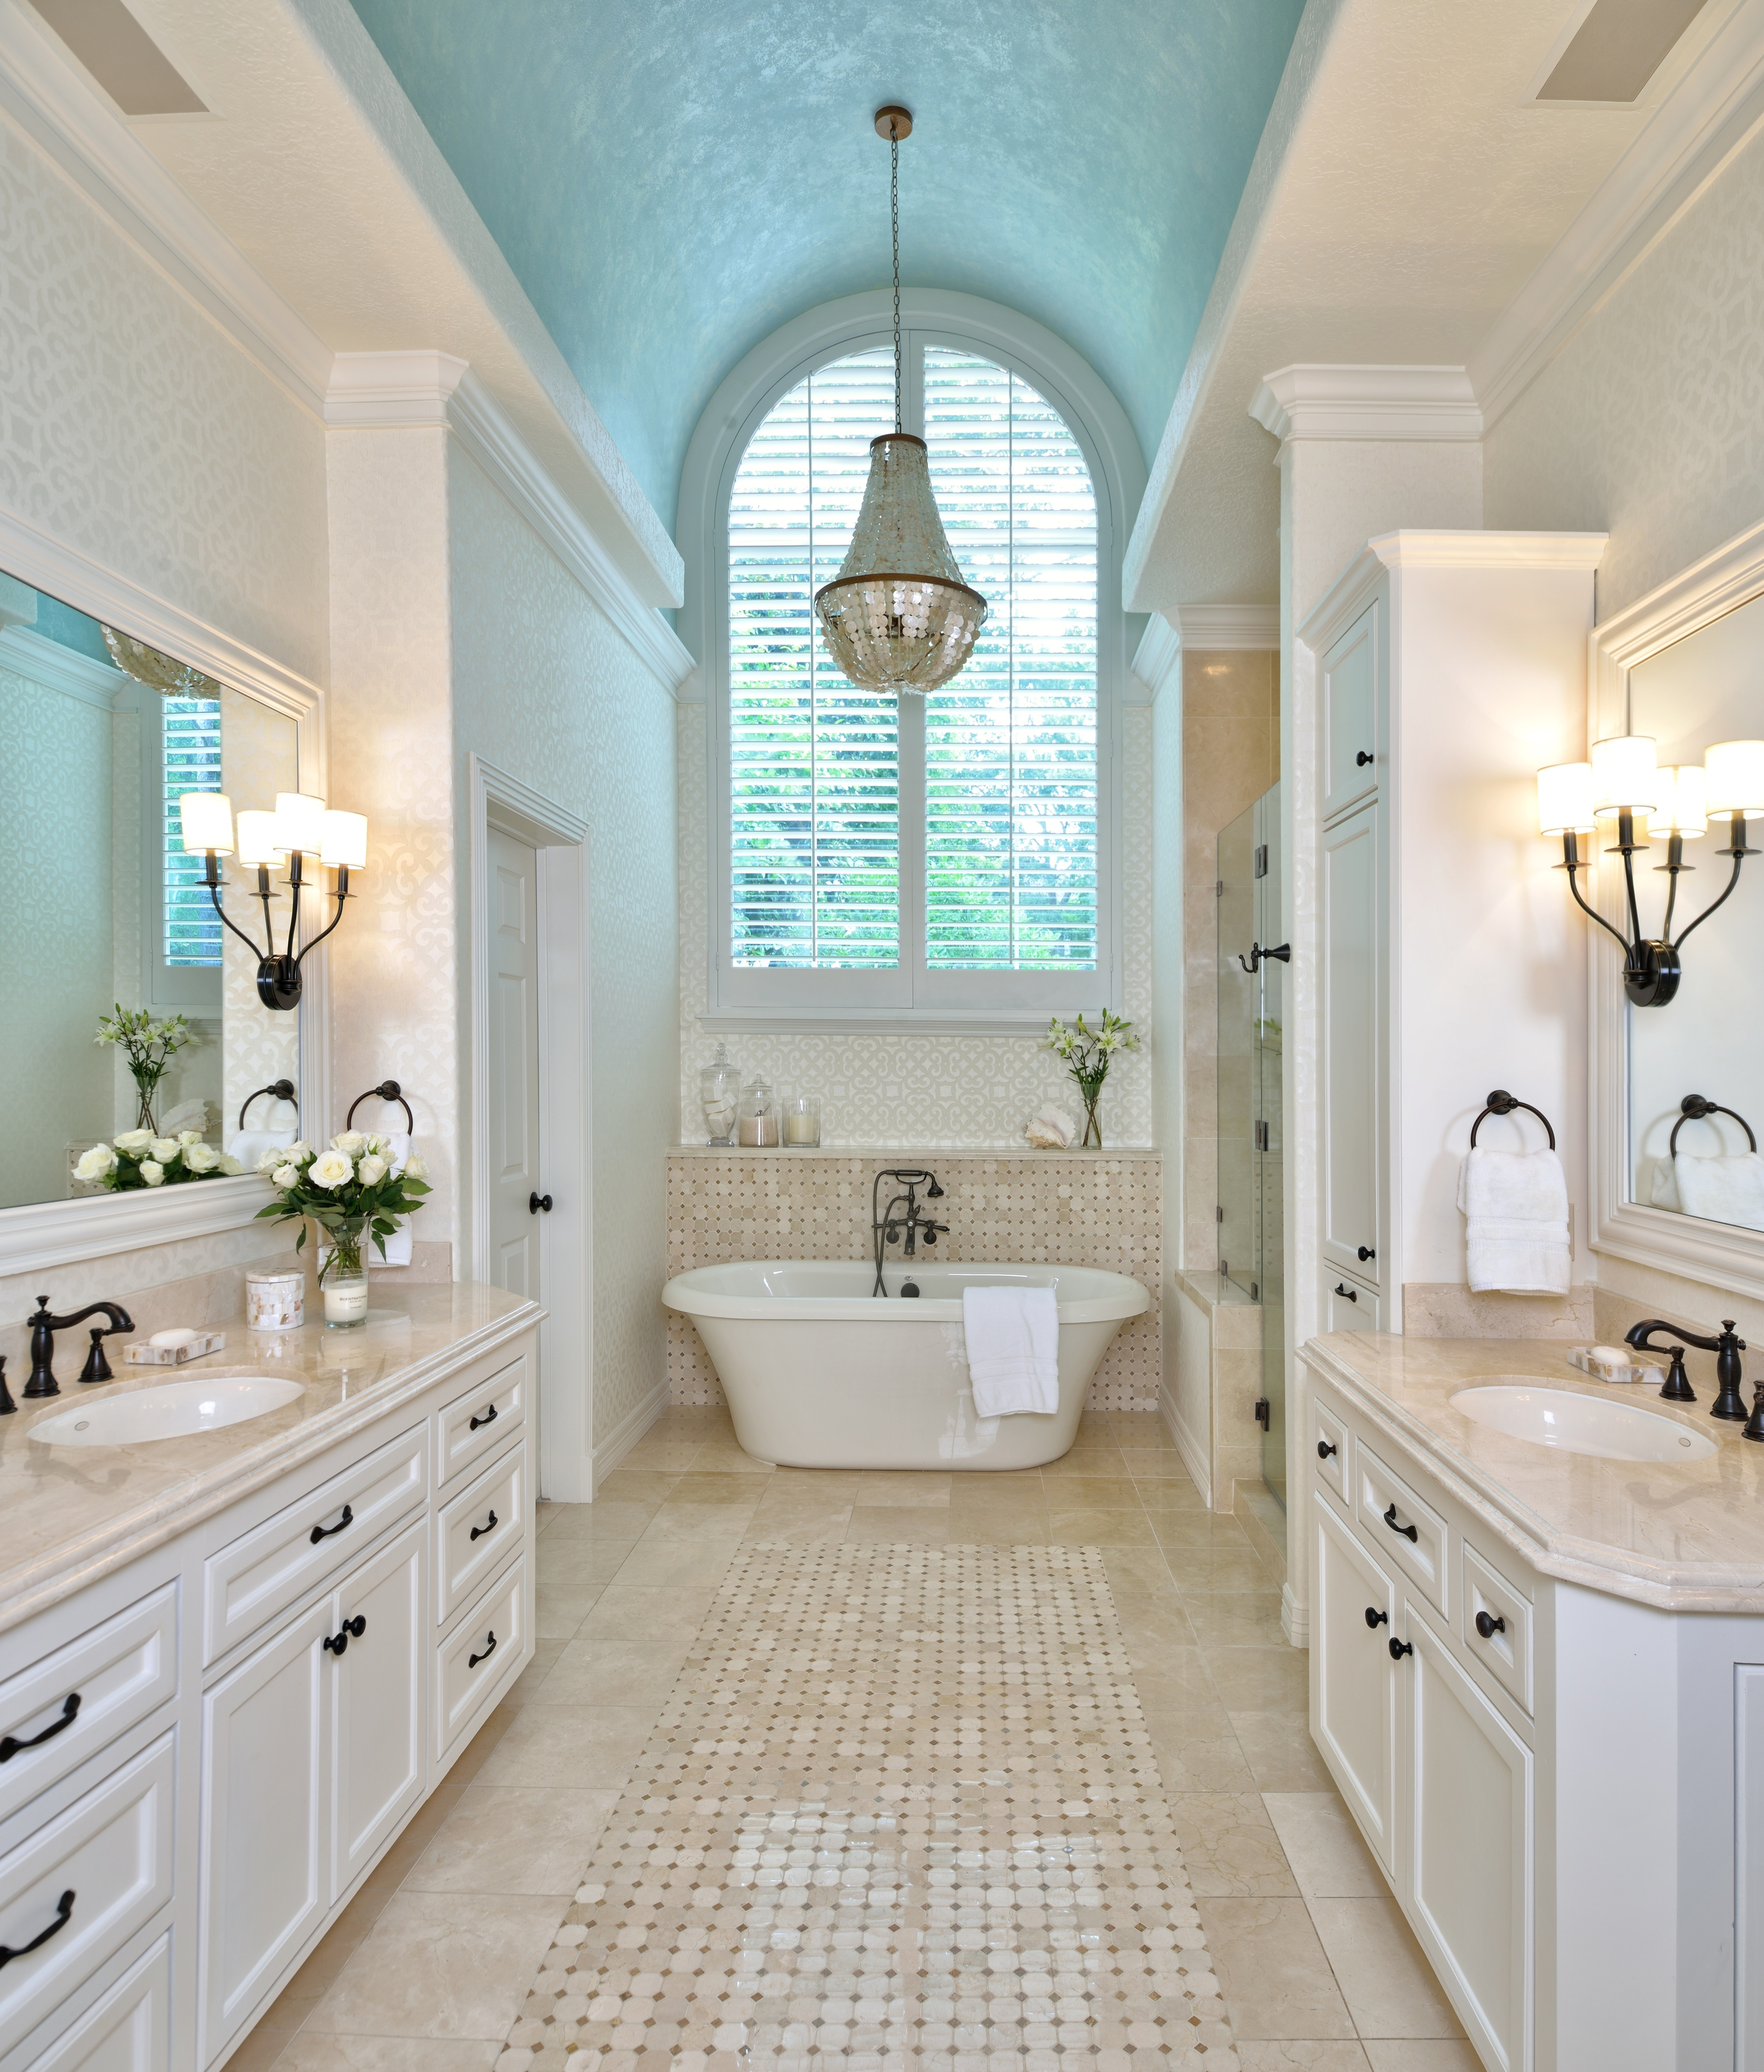 Best Kitchen Gallery: Planning A Bathroom Remodel Consider The Layout First Designed of Bathroom Designs With Pool House on rachelxblog.com